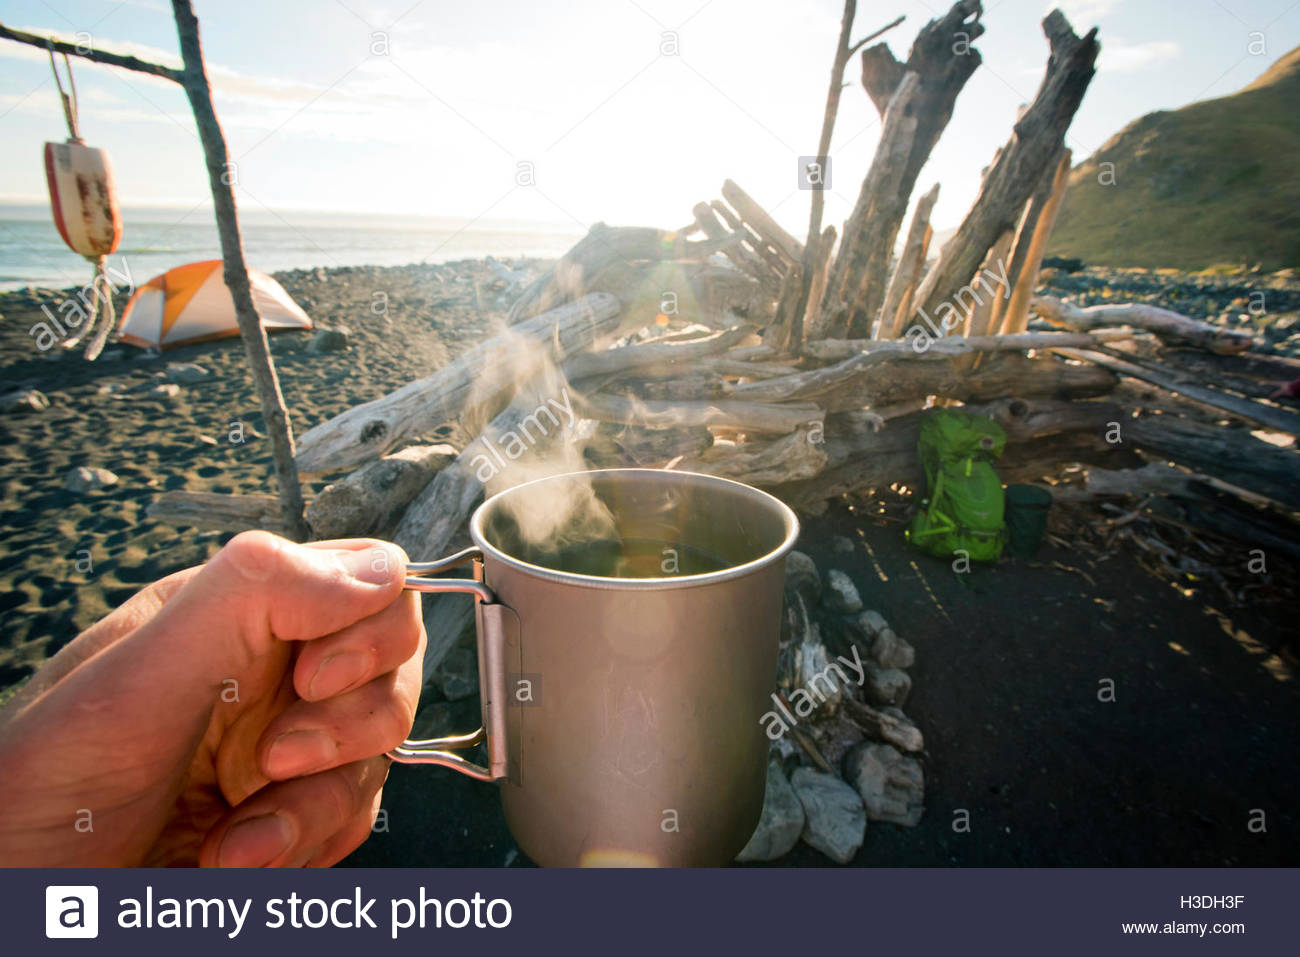 A steaming cup of coffee is seen in a campers hand. - Stock Image